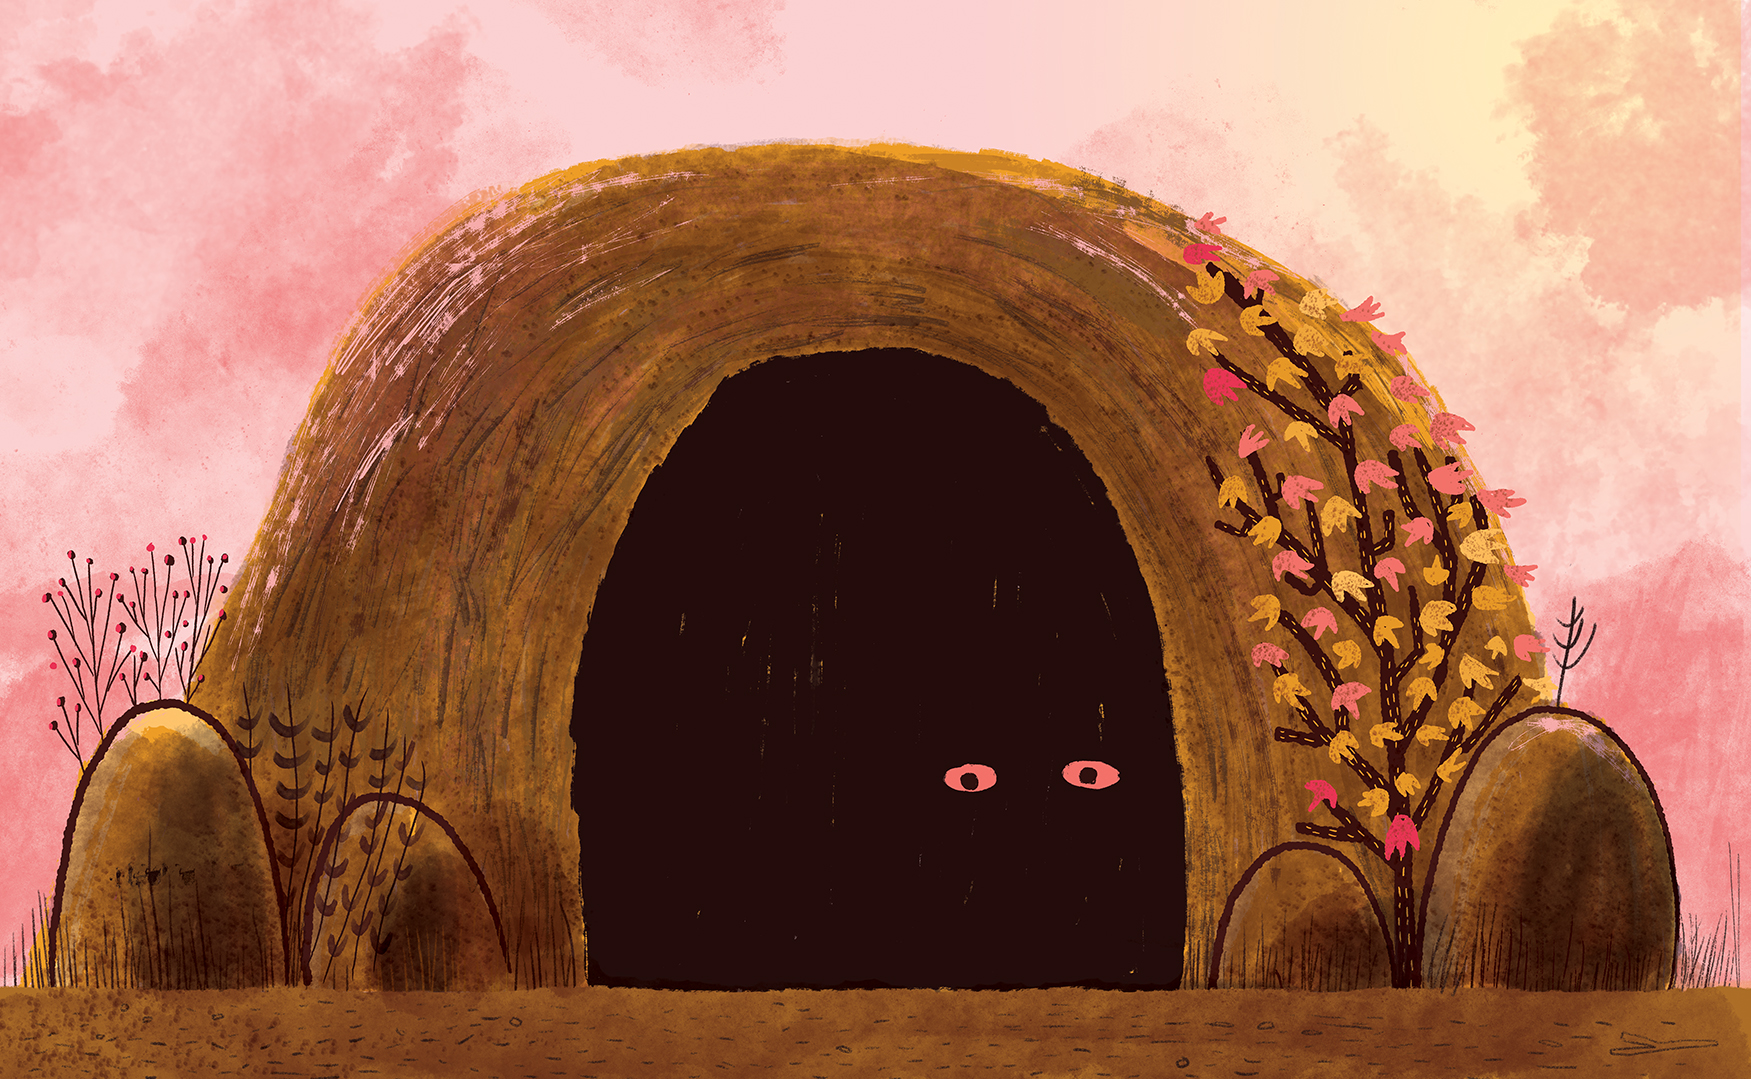 Theodore lived in a cave. It was a quiet cave, and that's the way he liked it.